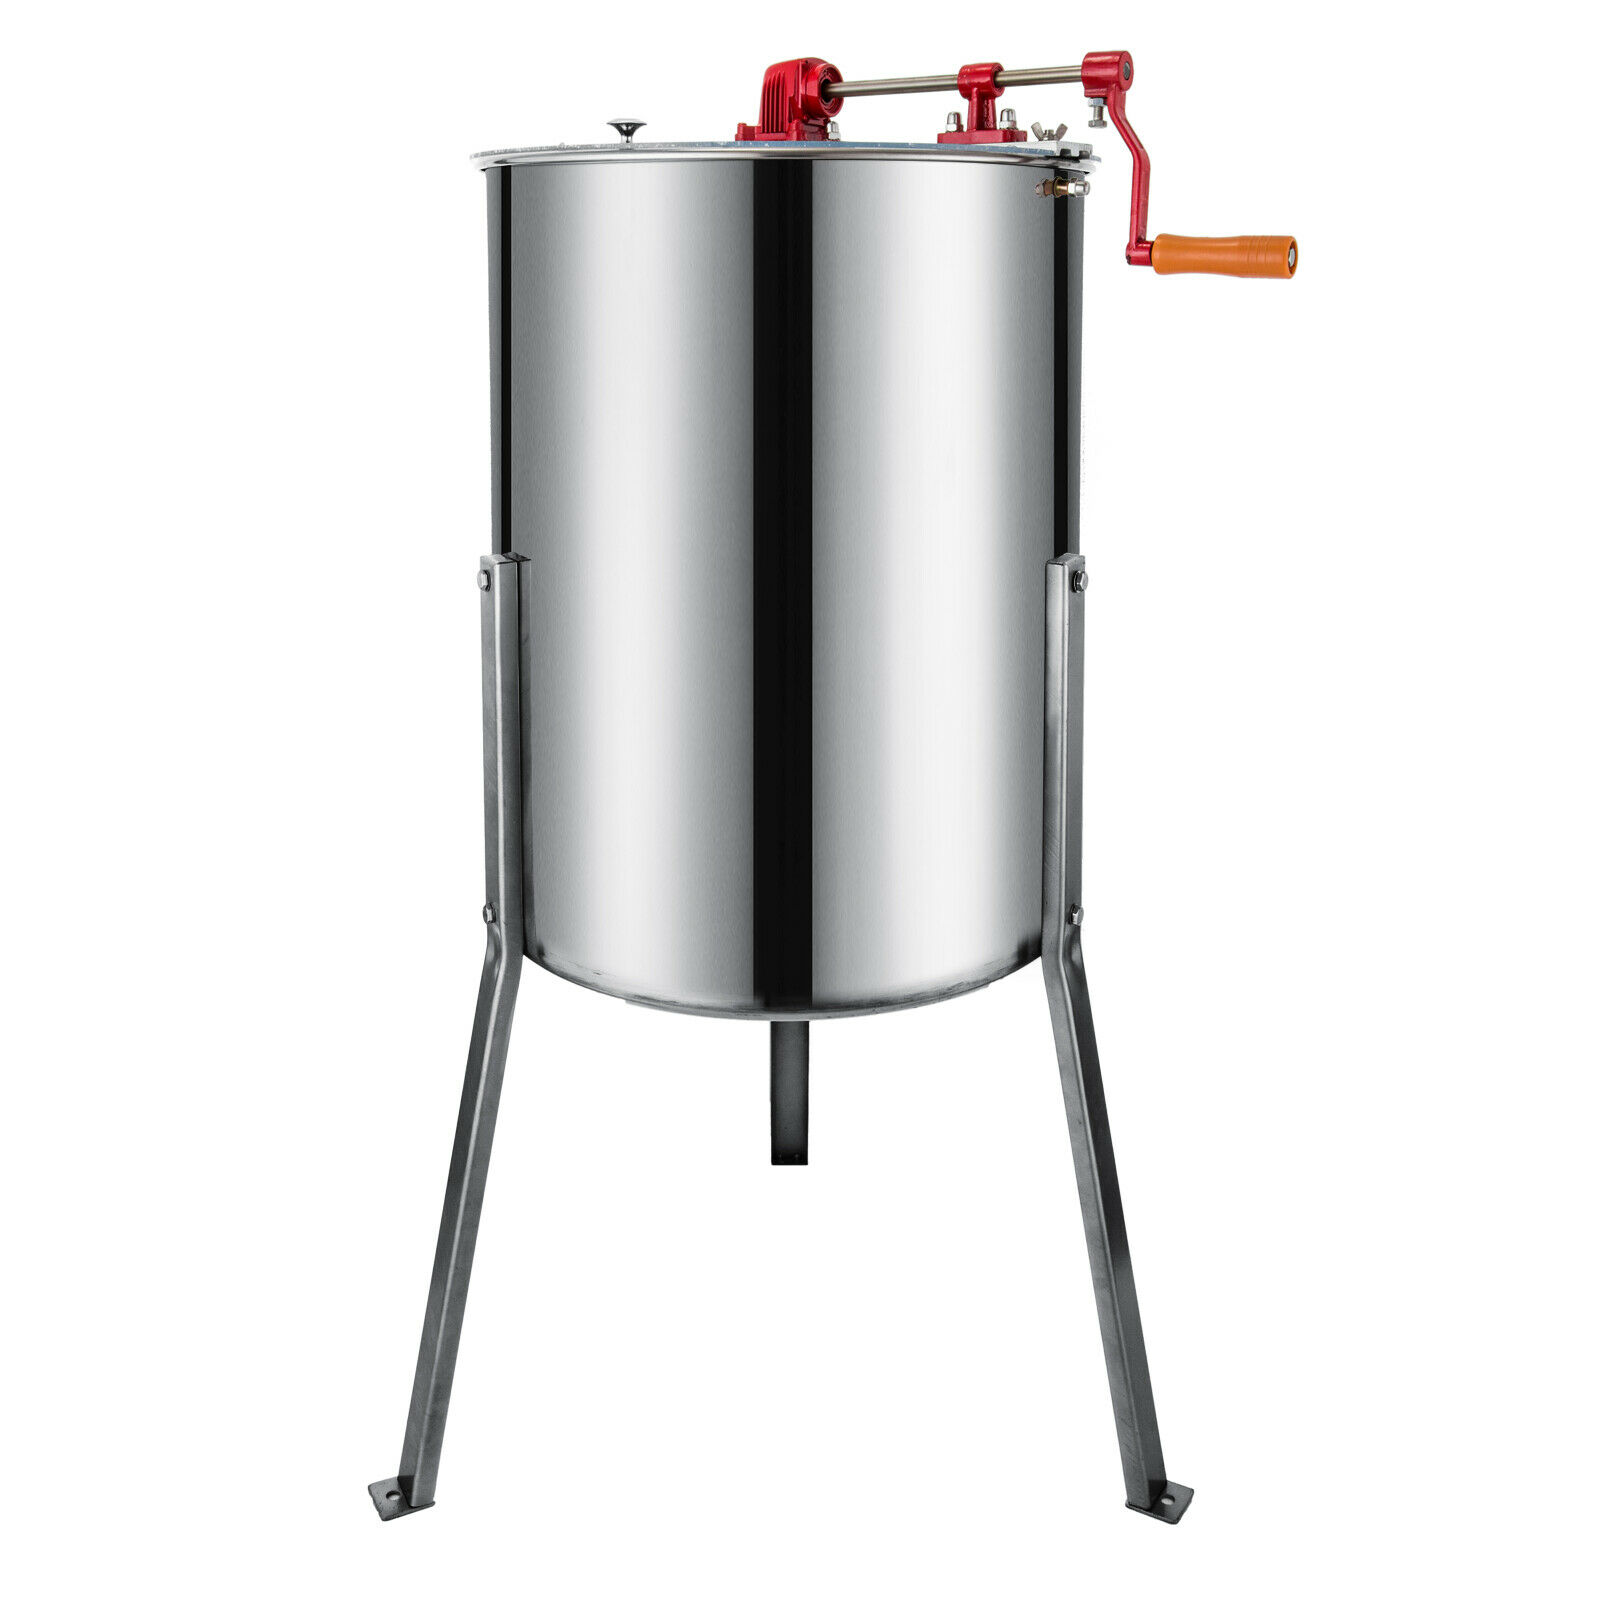 Vevor Stainless Steel Manual Honey Extractor 4 Frame Bee Extractor Stainless Steel Honey Spinner